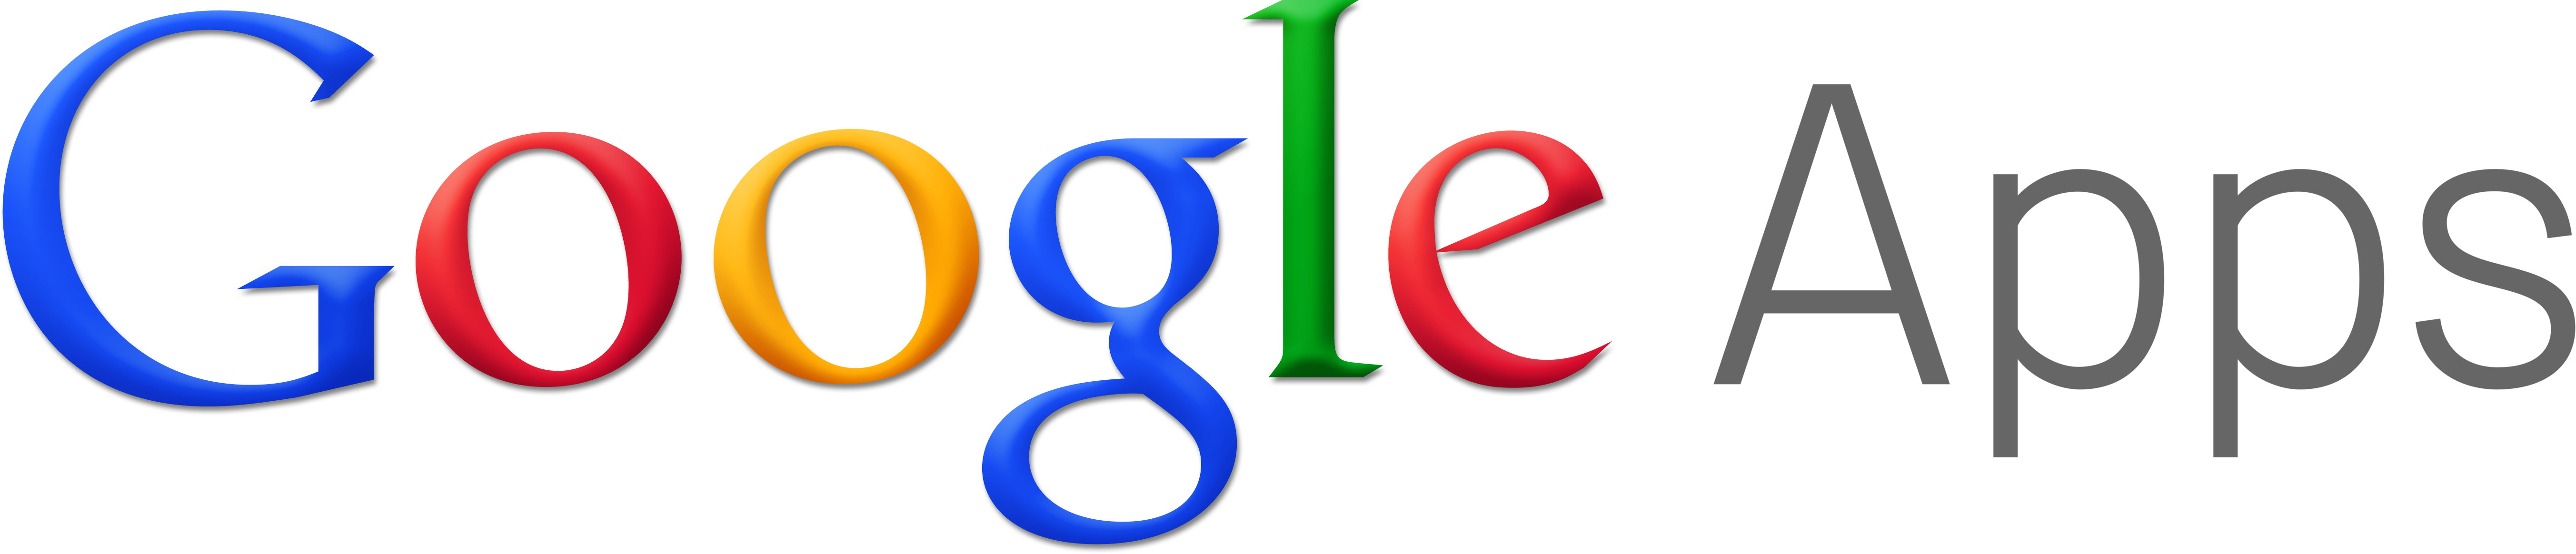 Google Apps Logo (large)